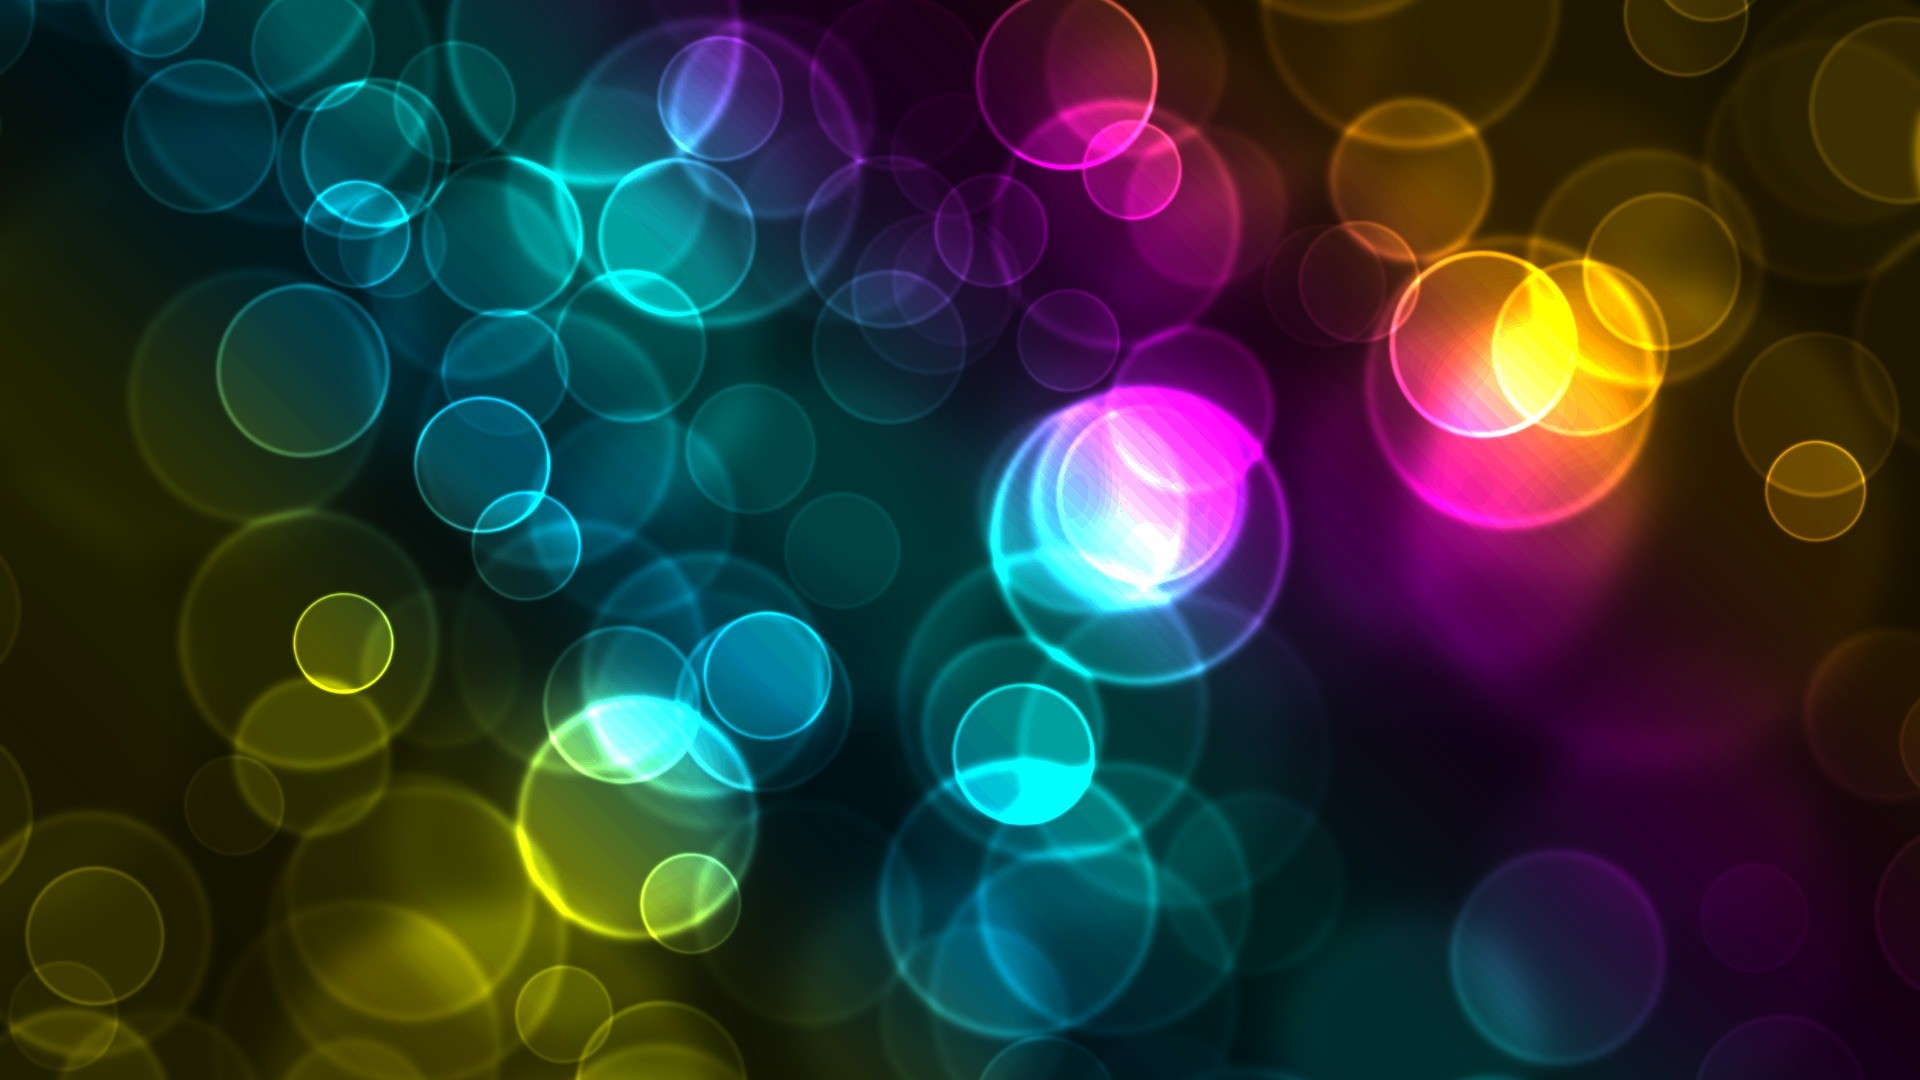 Glowing Wallpaper